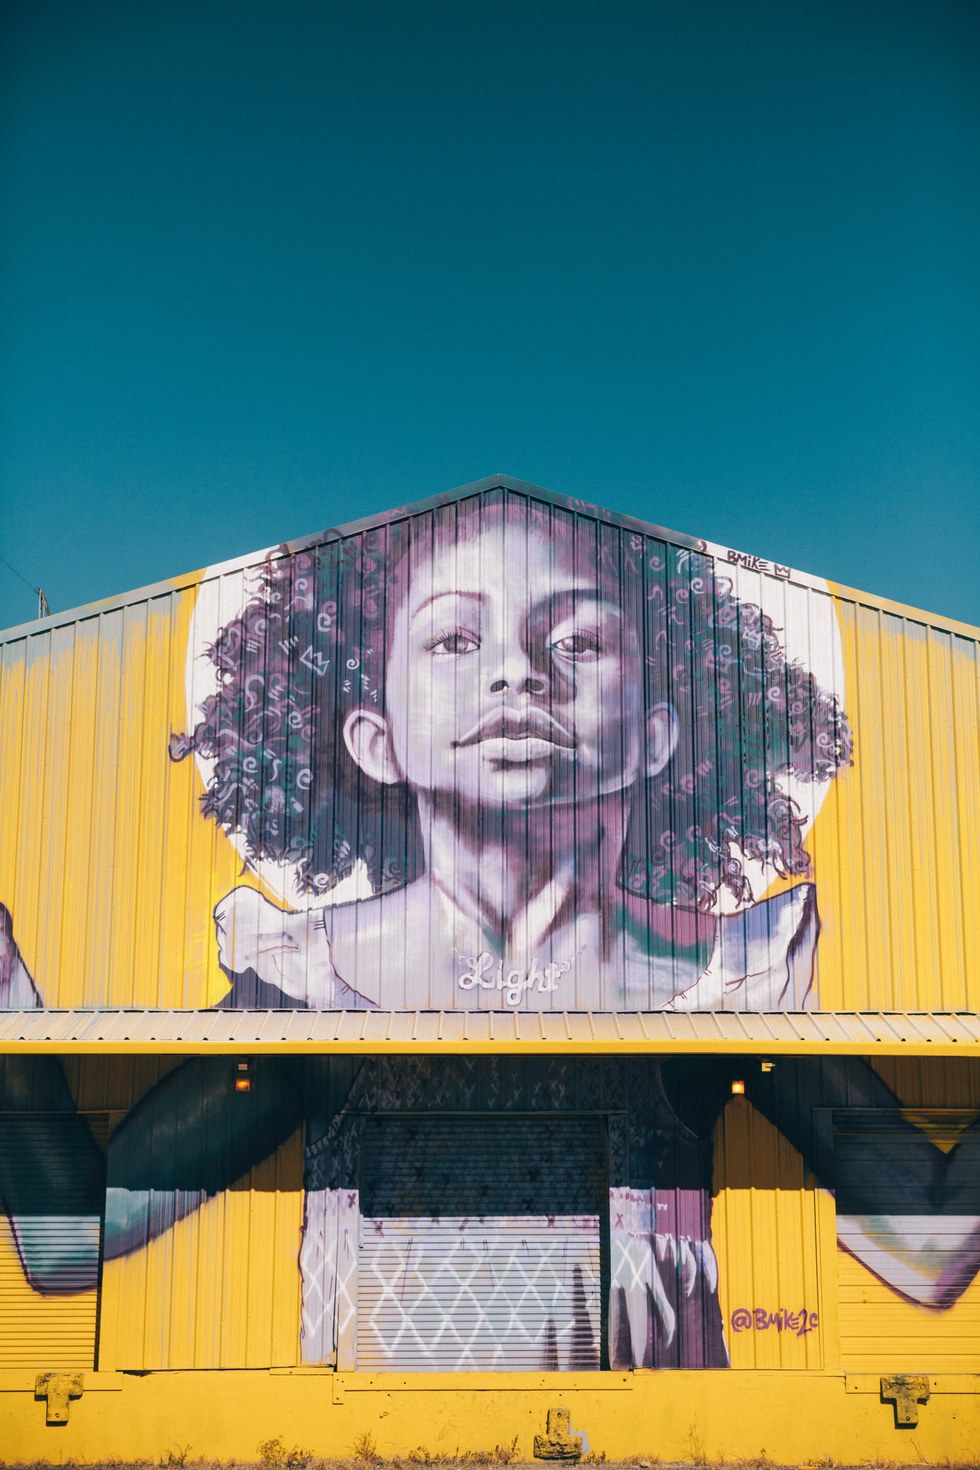 A Brandan Odums mural in the Bywater